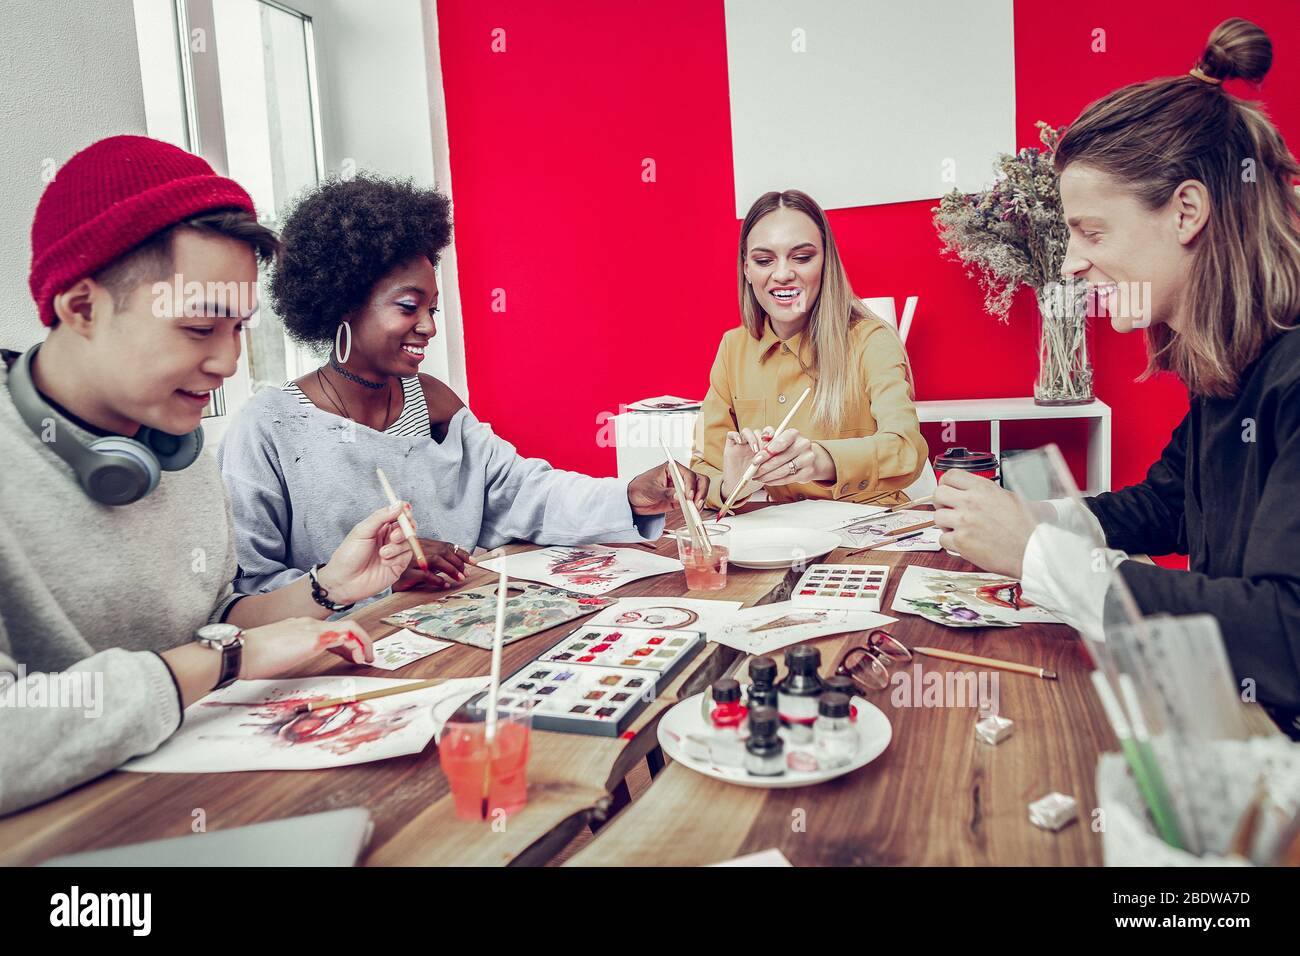 Happy mixed raced people visiting art workshop Stock Photo